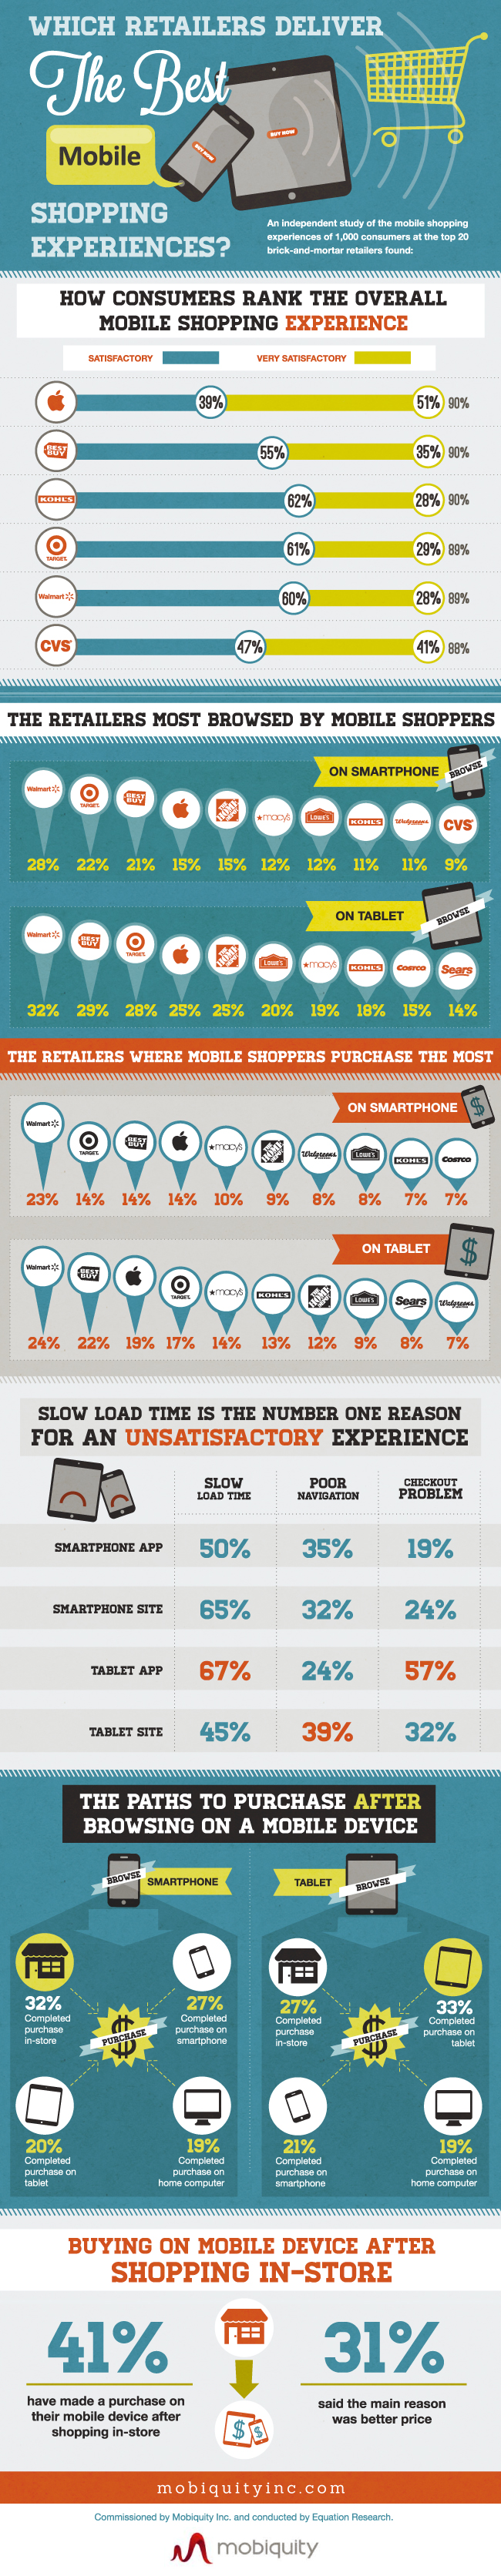 mobile-retail-experience-infographic_50d0dc9181373